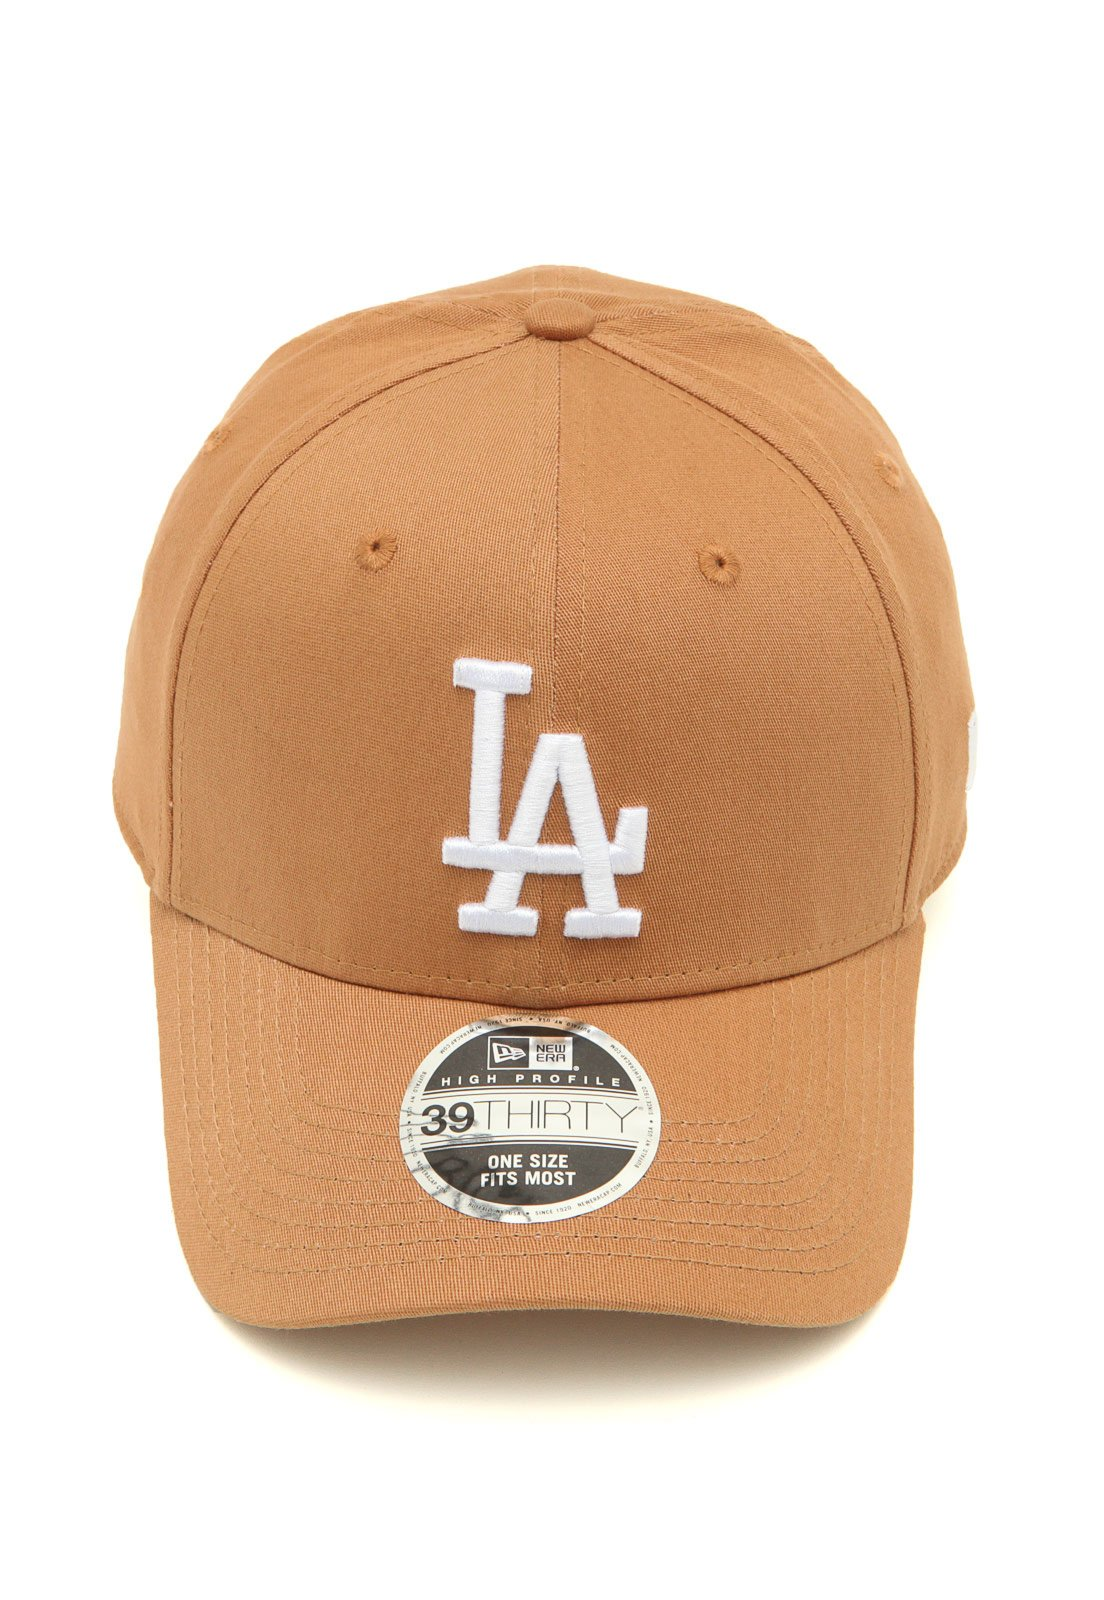 https://static.dafiti.com.br/p/New-Era-Bon%C3%A9-New-Era-Los-Angeles-Dodgers-Bege-9626-0318604-1-zoom.jpg